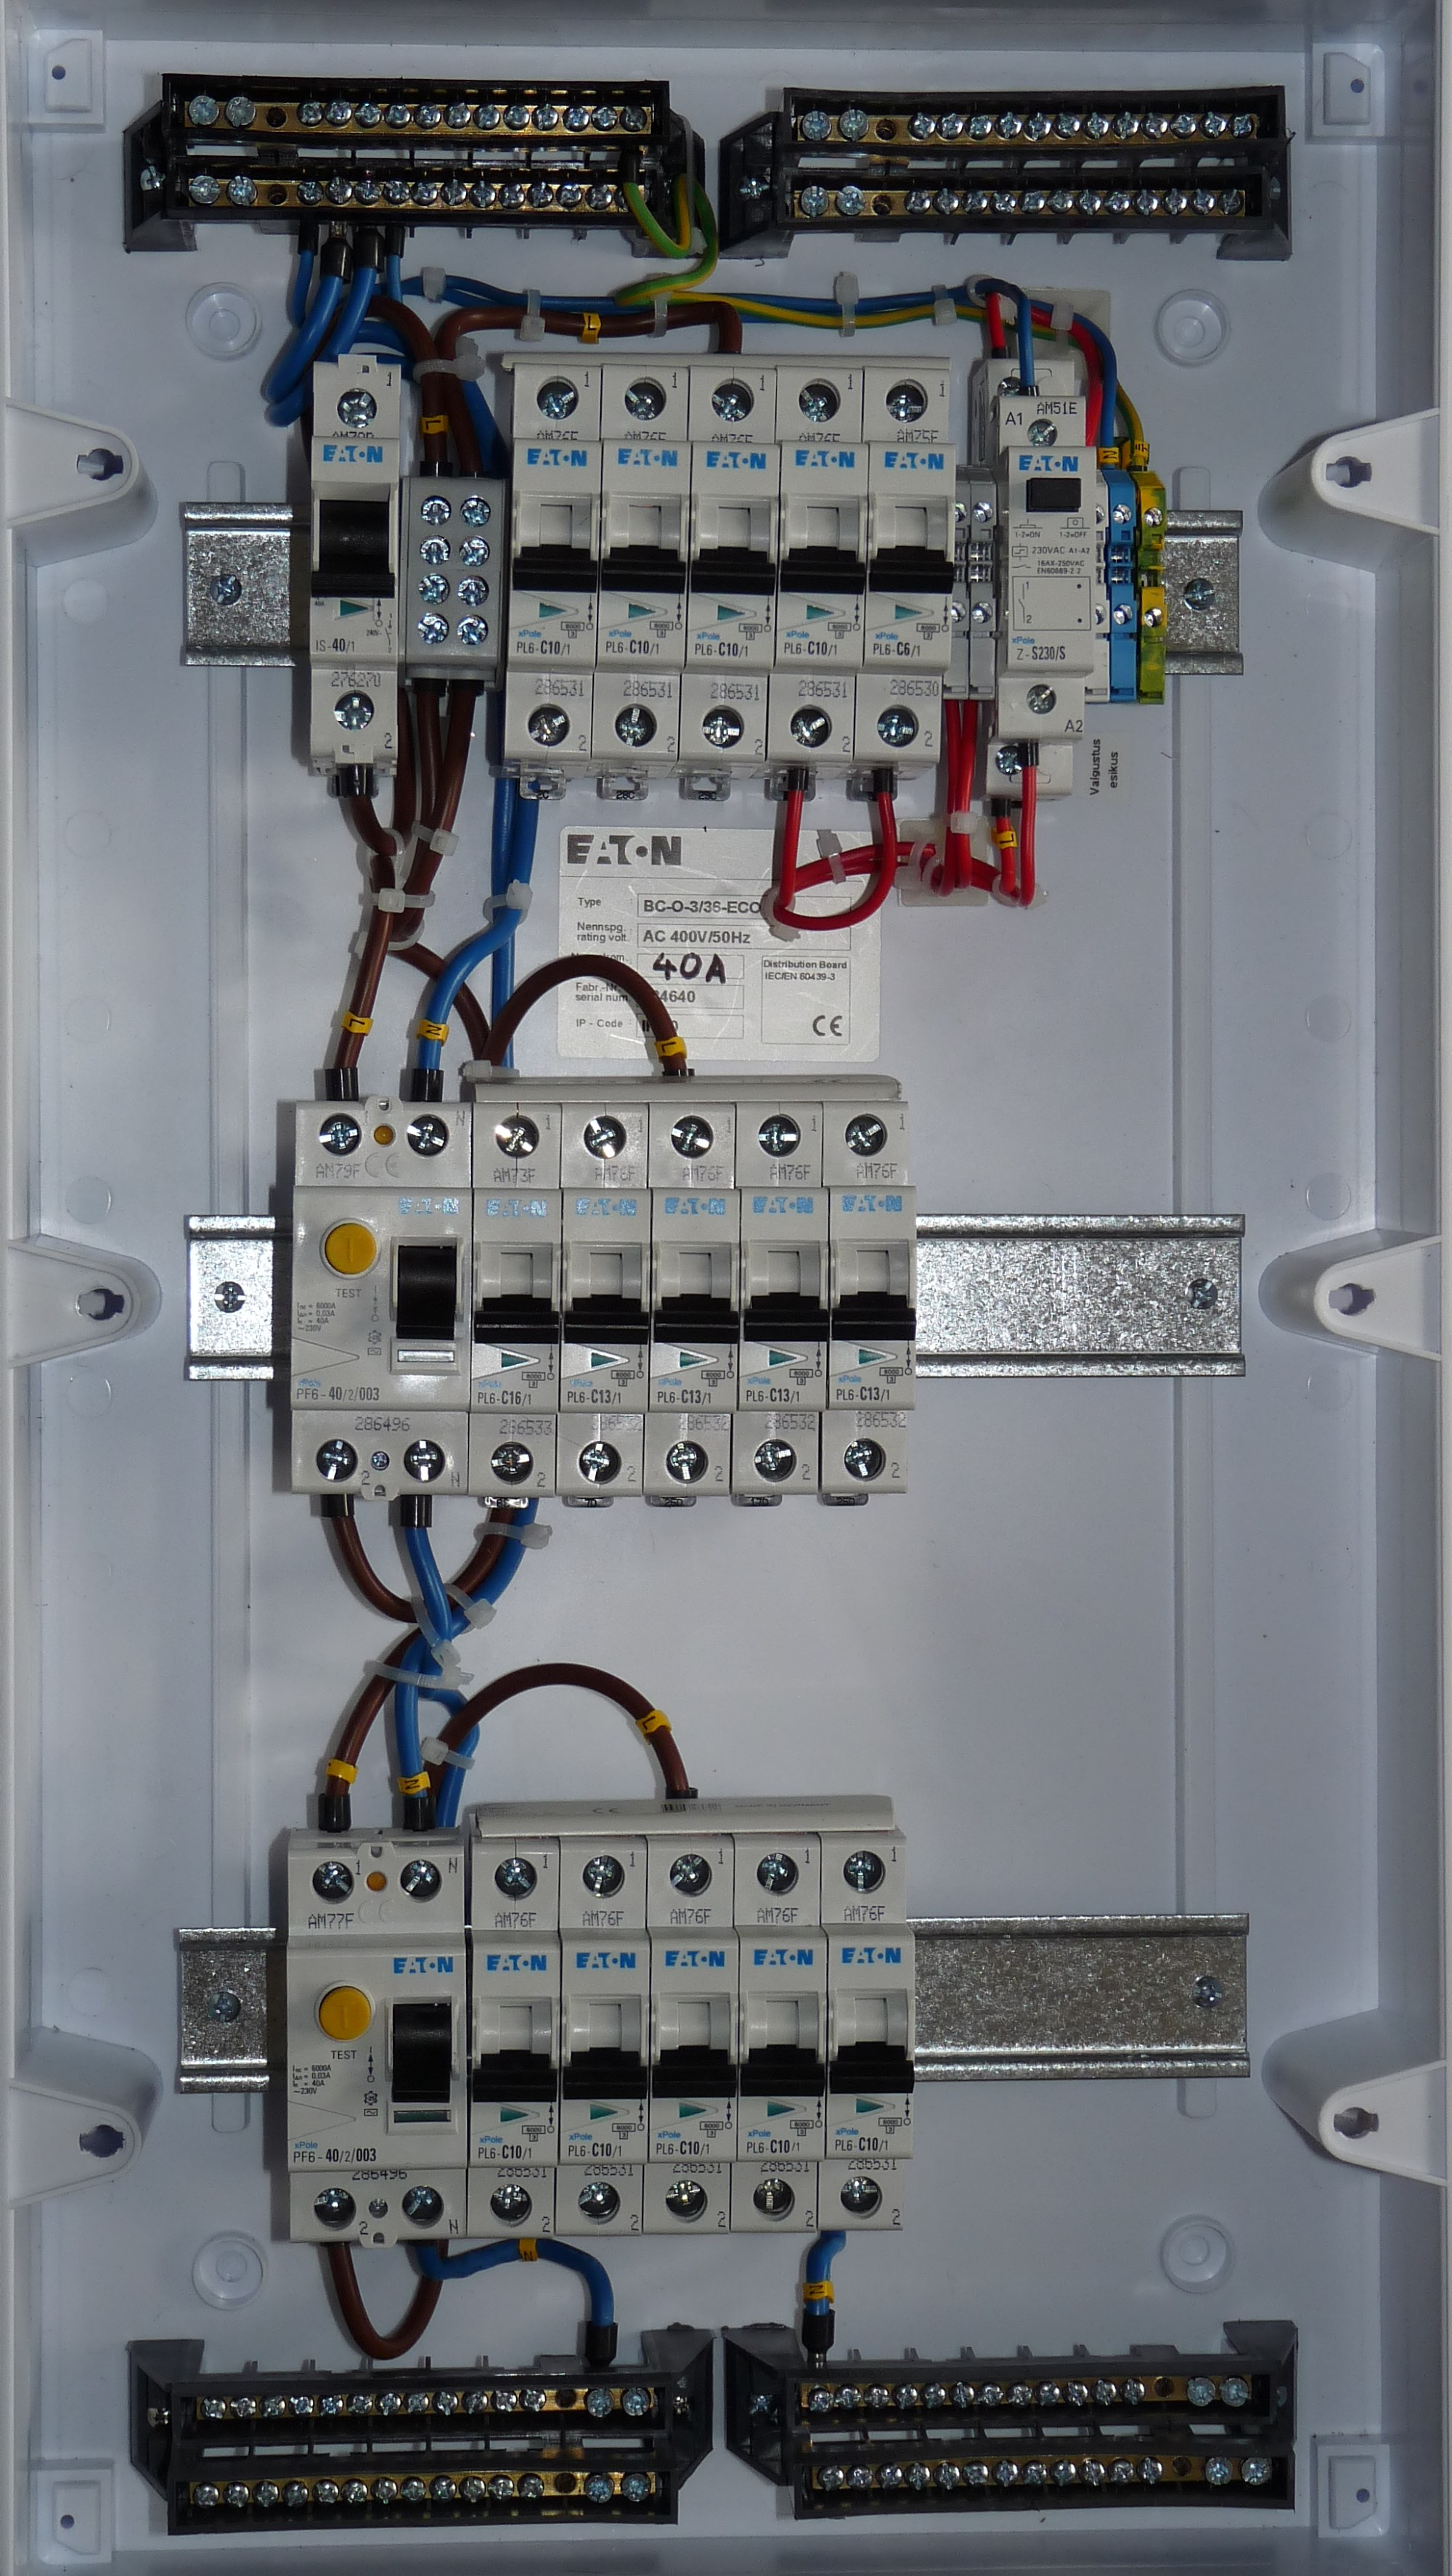 hight resolution of file gonsiori 3 apartment fuse box jpg wikimedia commons old fuse box wiring apartment fuse box